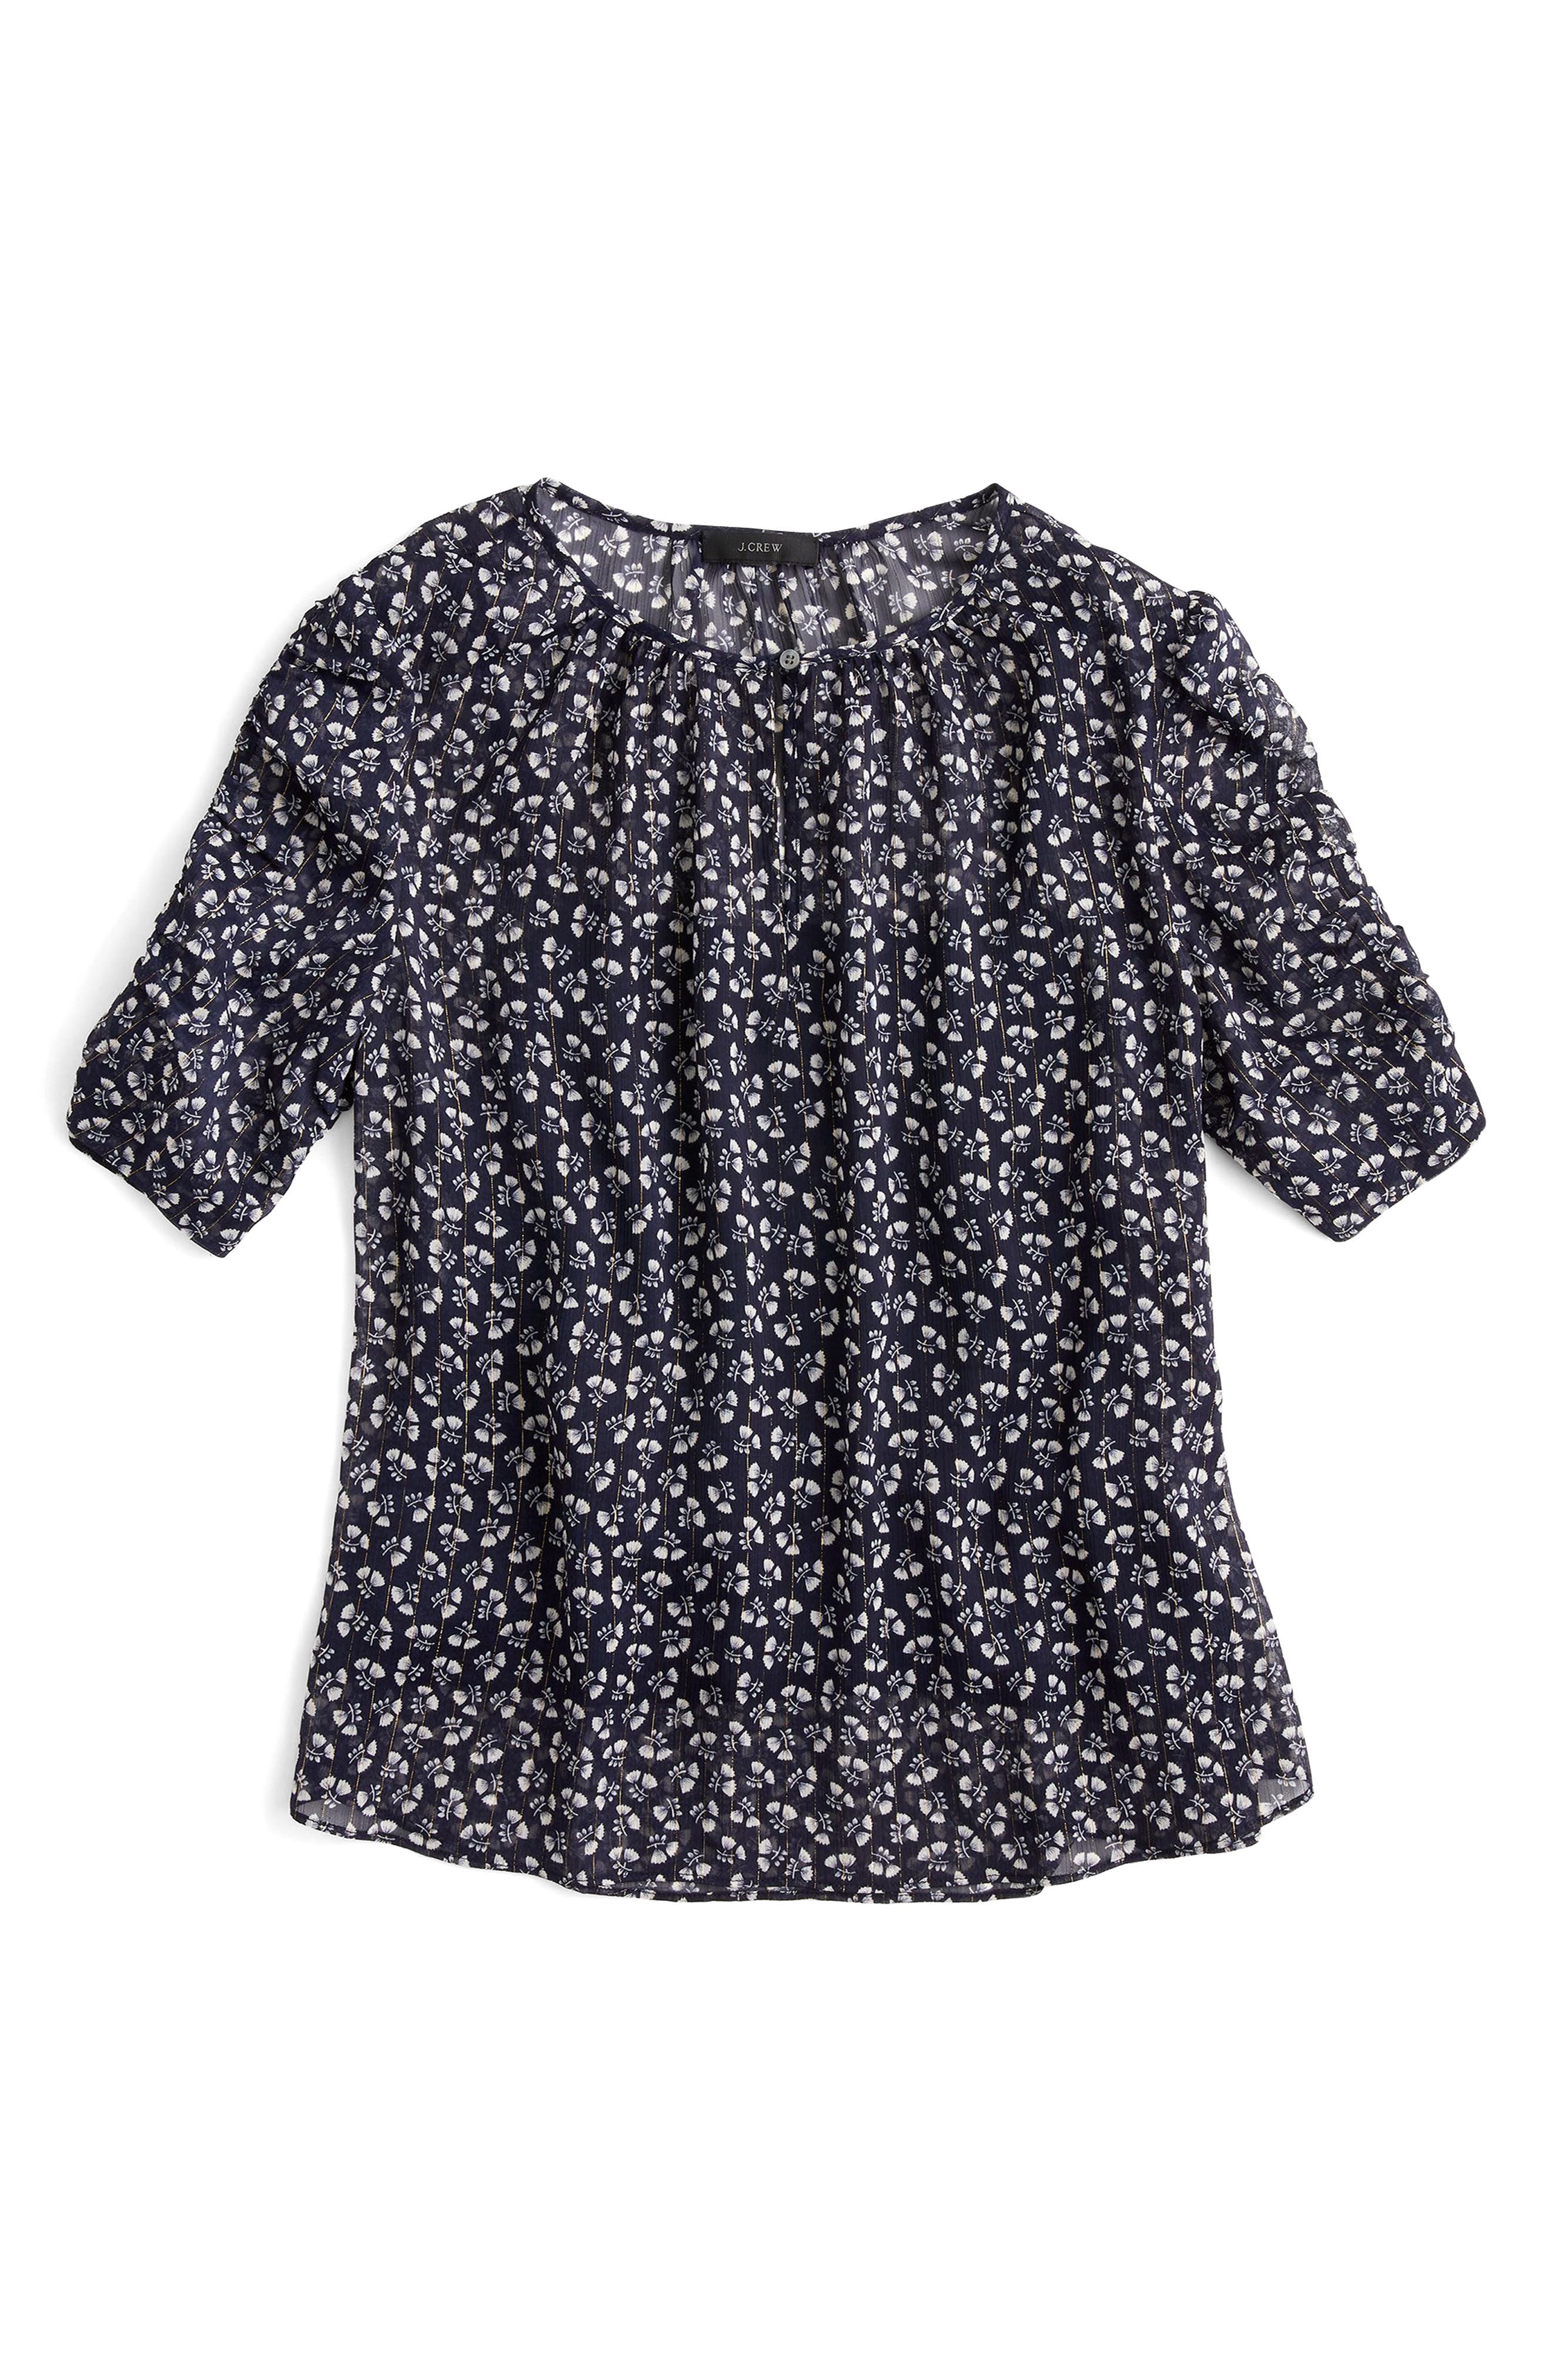 J.Crew Ruched Sleeve Sparkle Floral Top